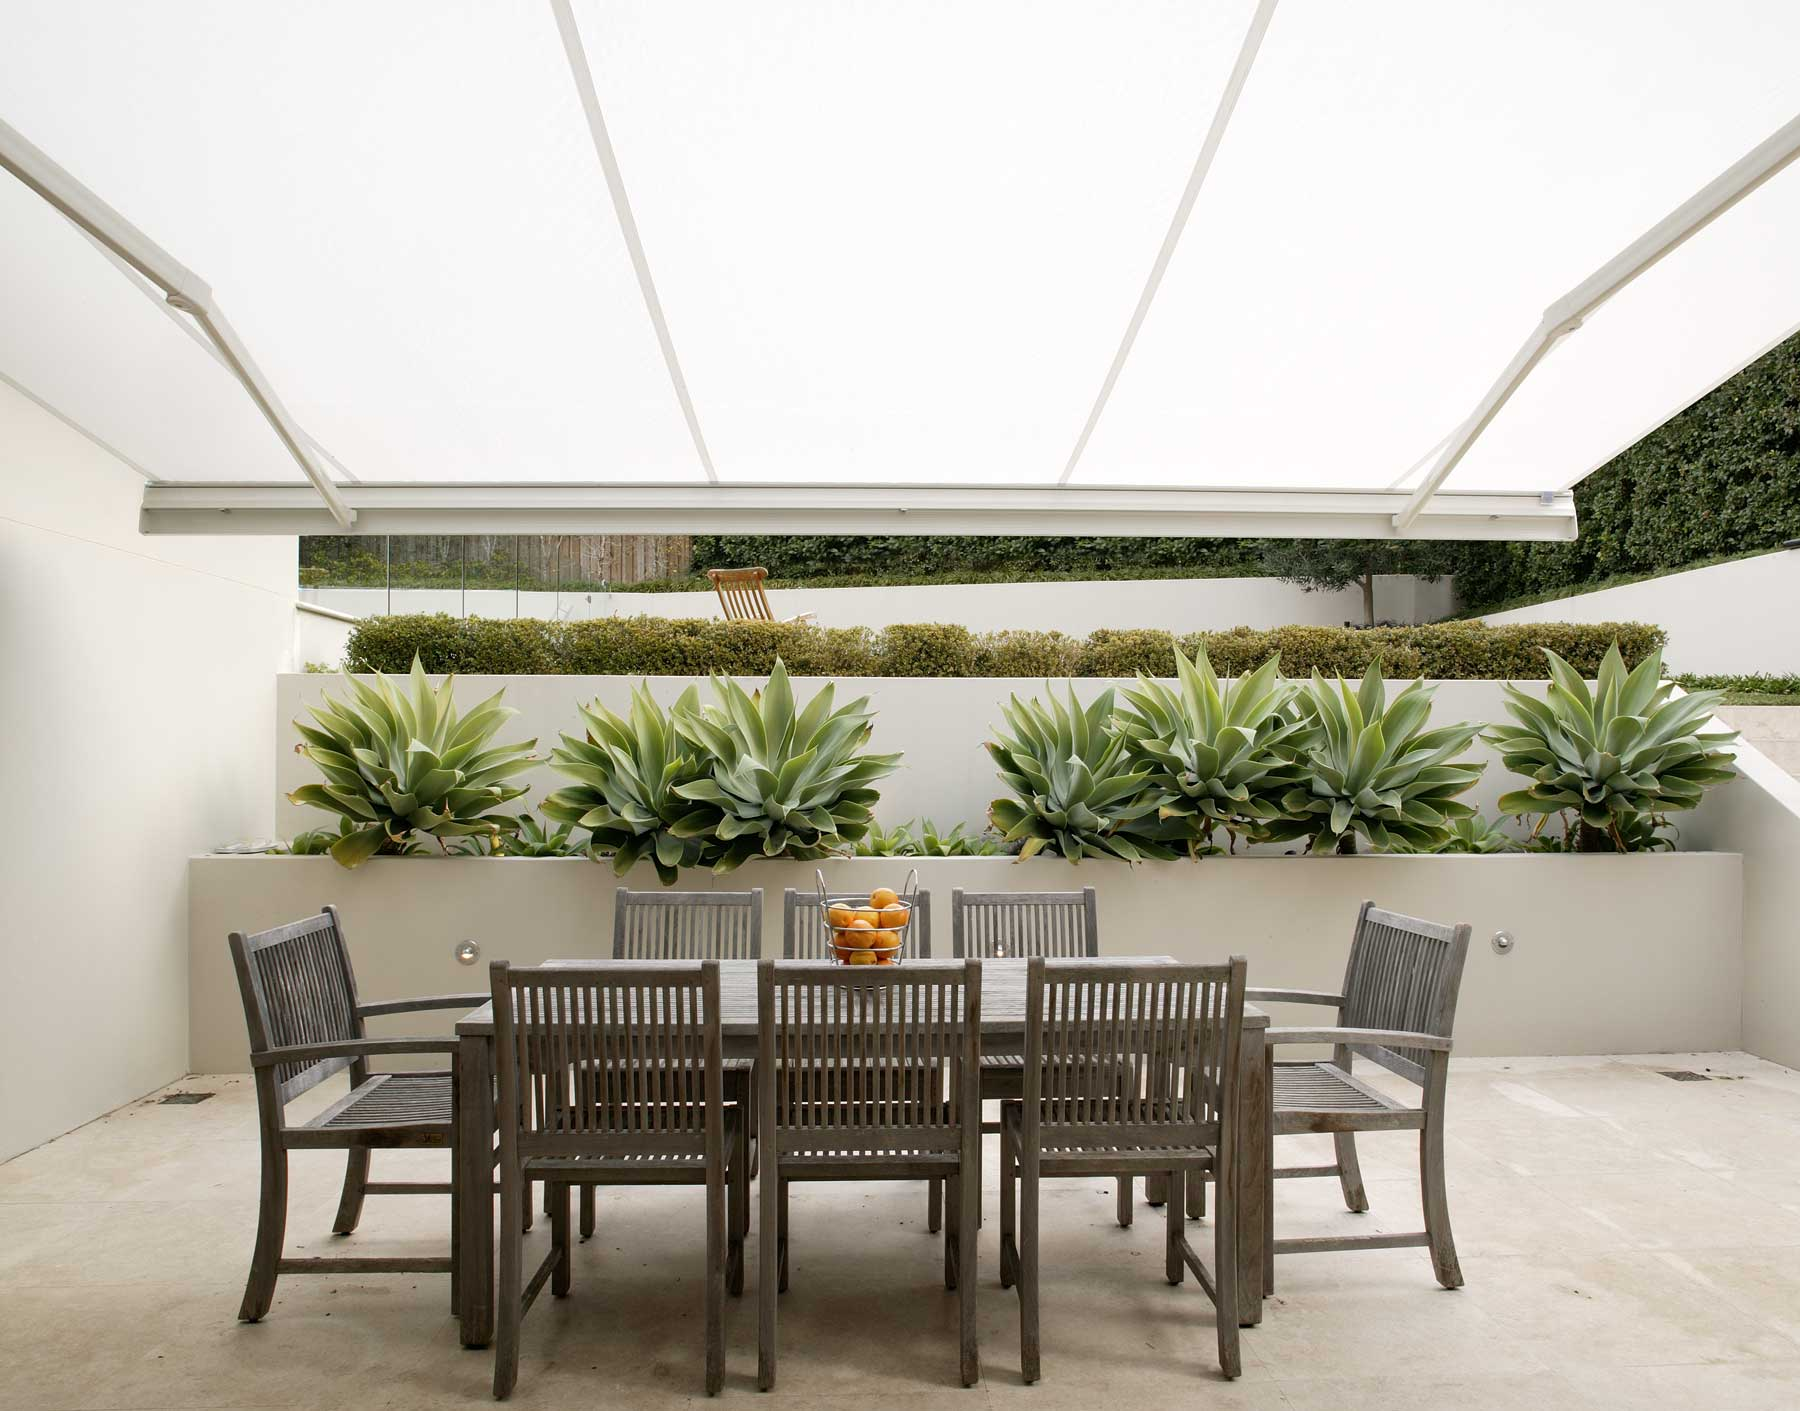 Retractable Awning Amp Folding Arms Awnings Accent Blinds